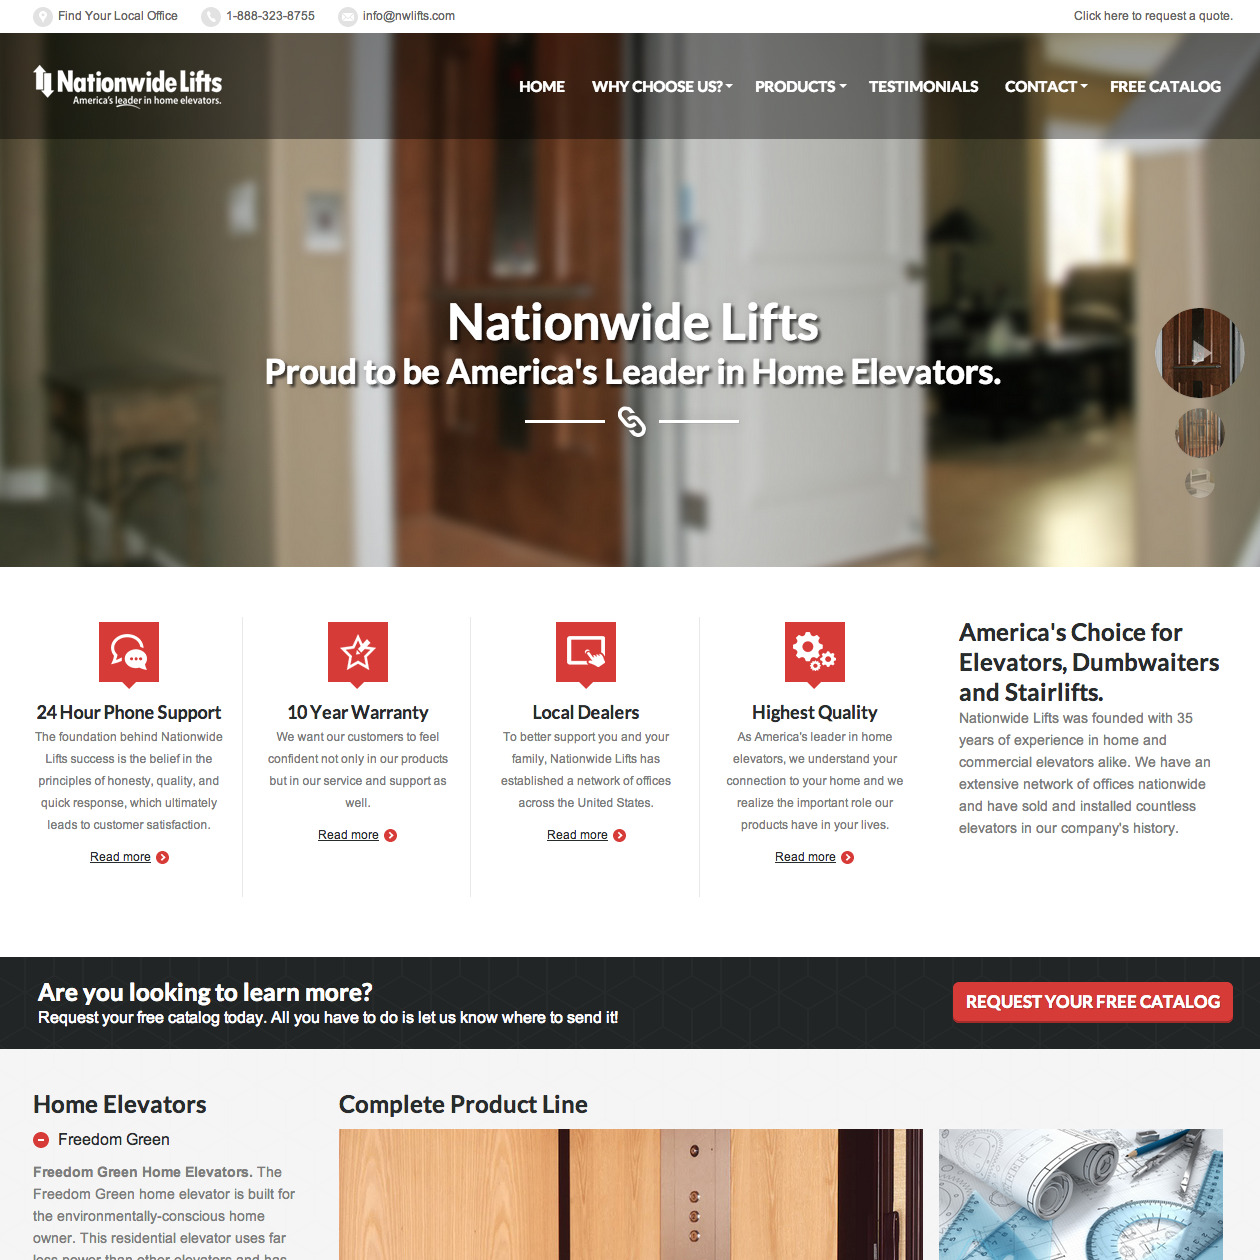 Nationwide Lifts Website Design Screenshot